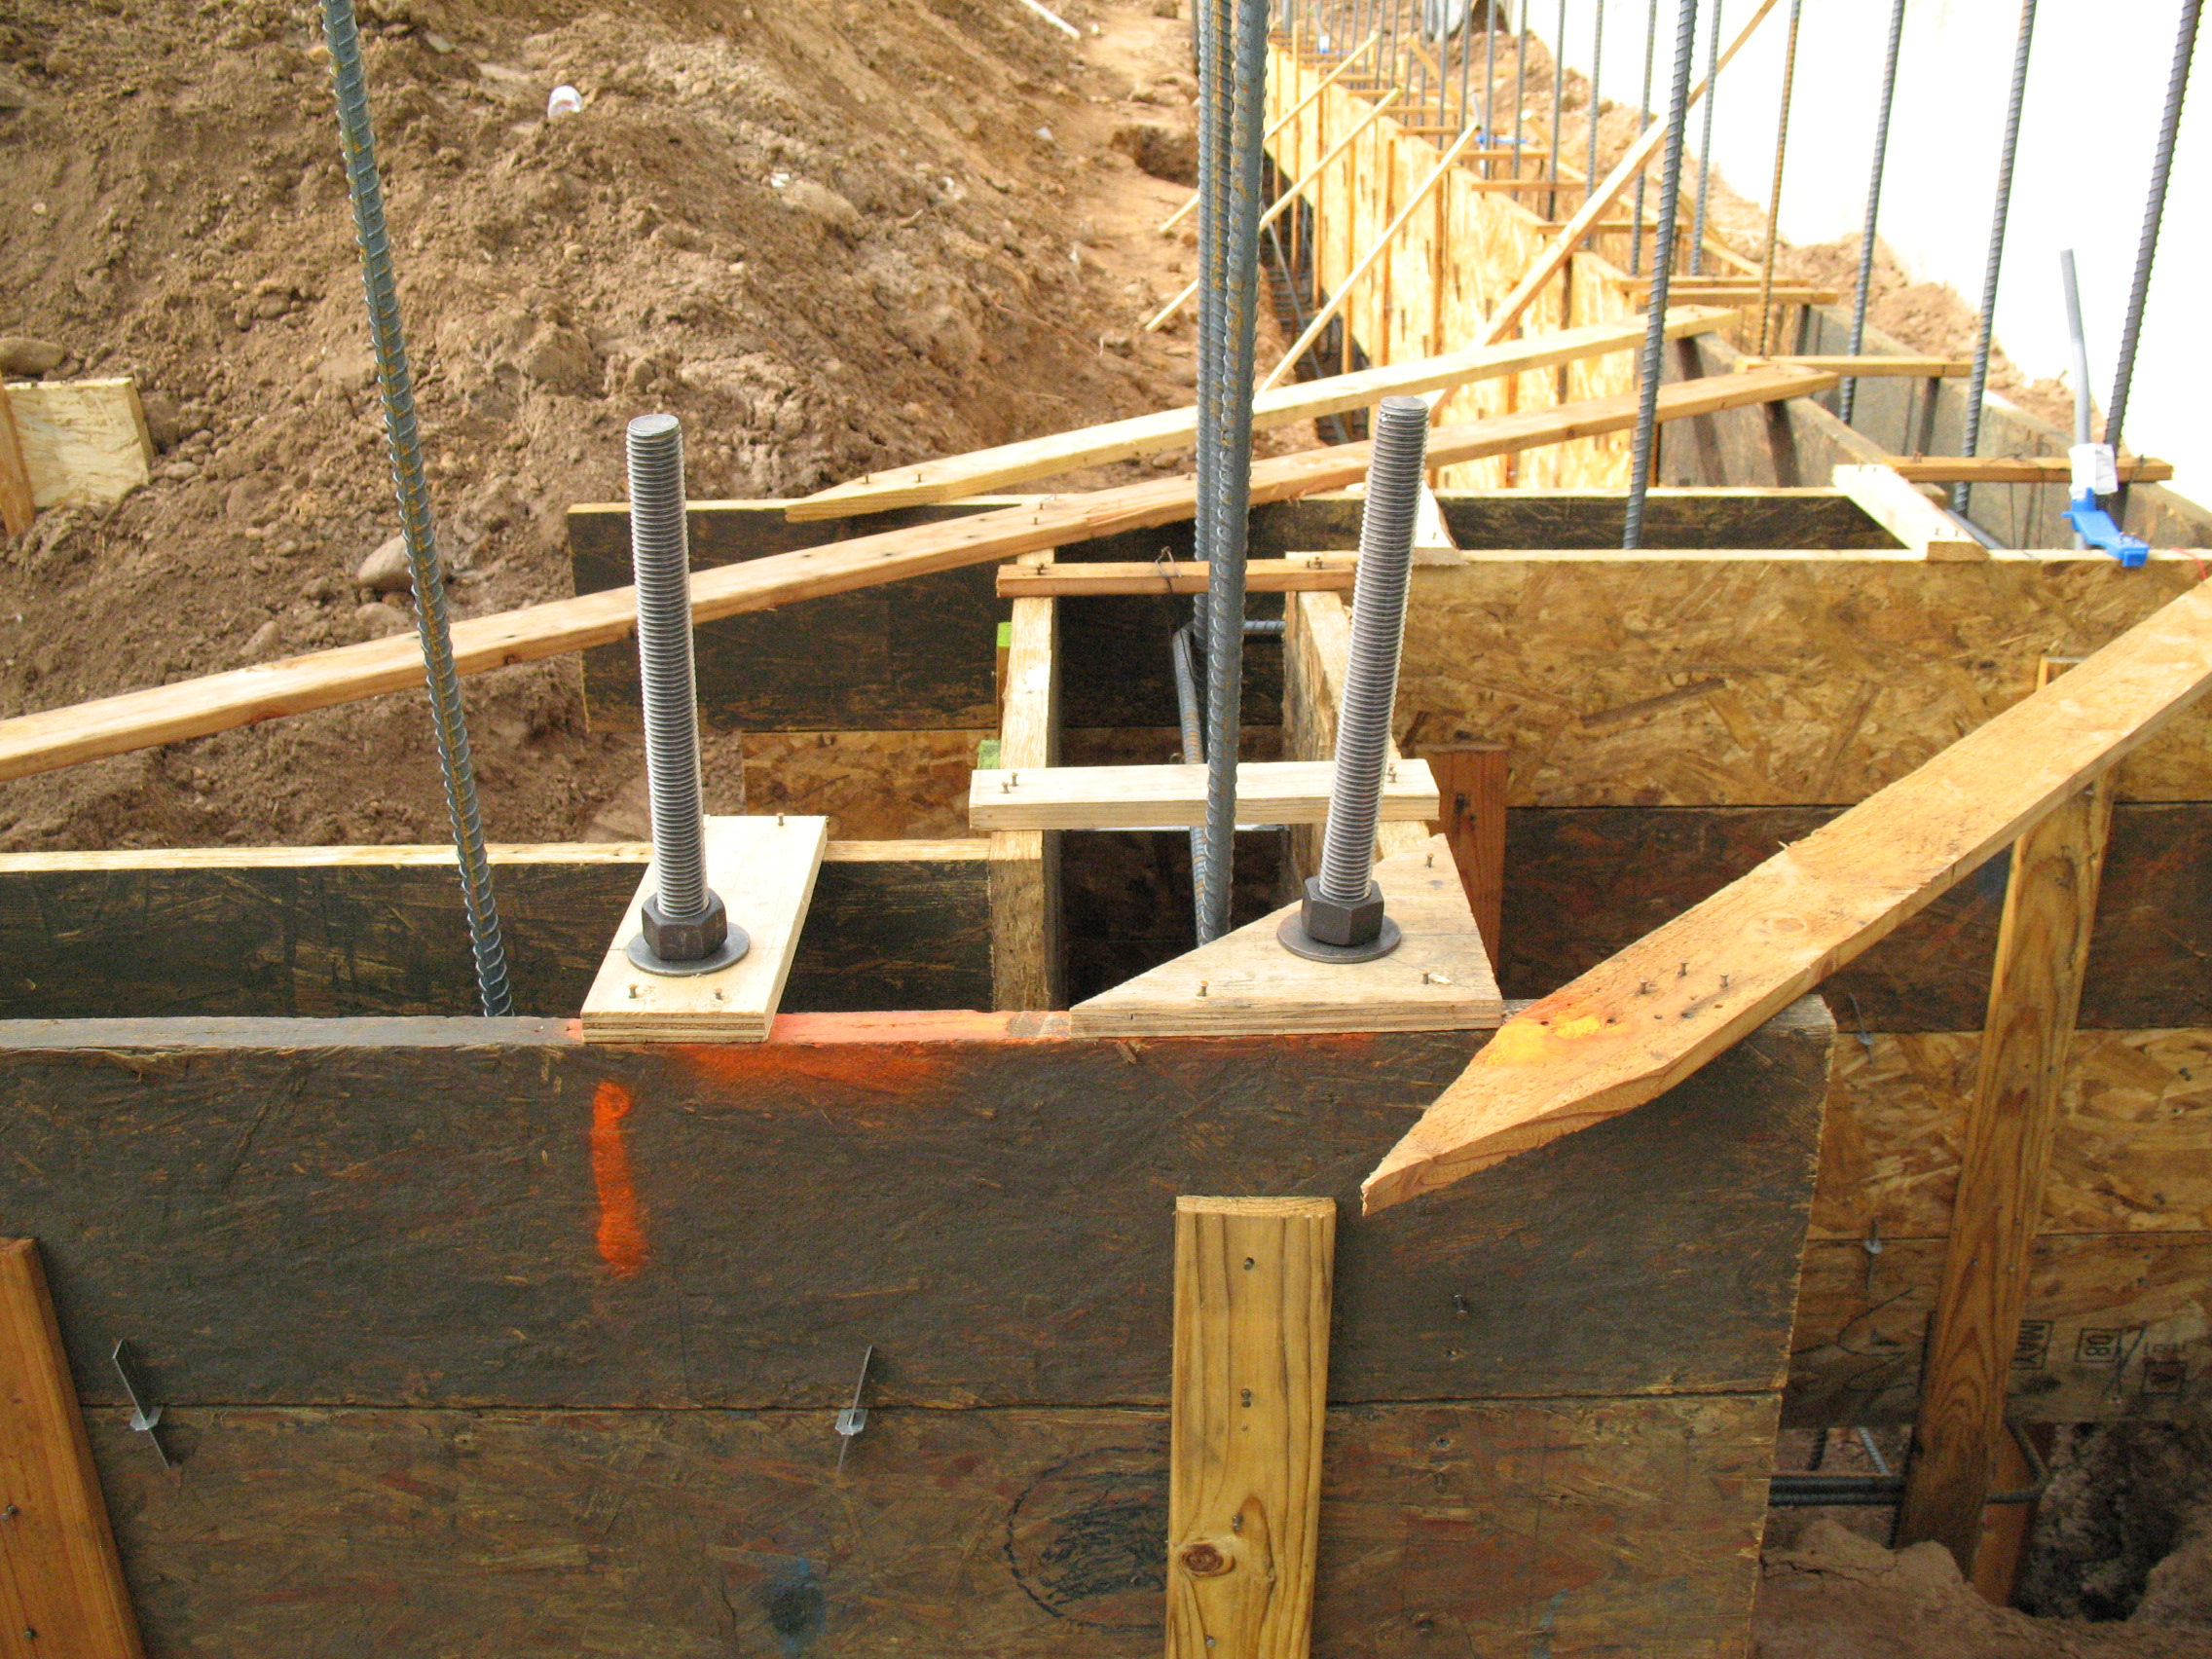 Building Frame Bolt : House foundation forms and structural reinforcement tips